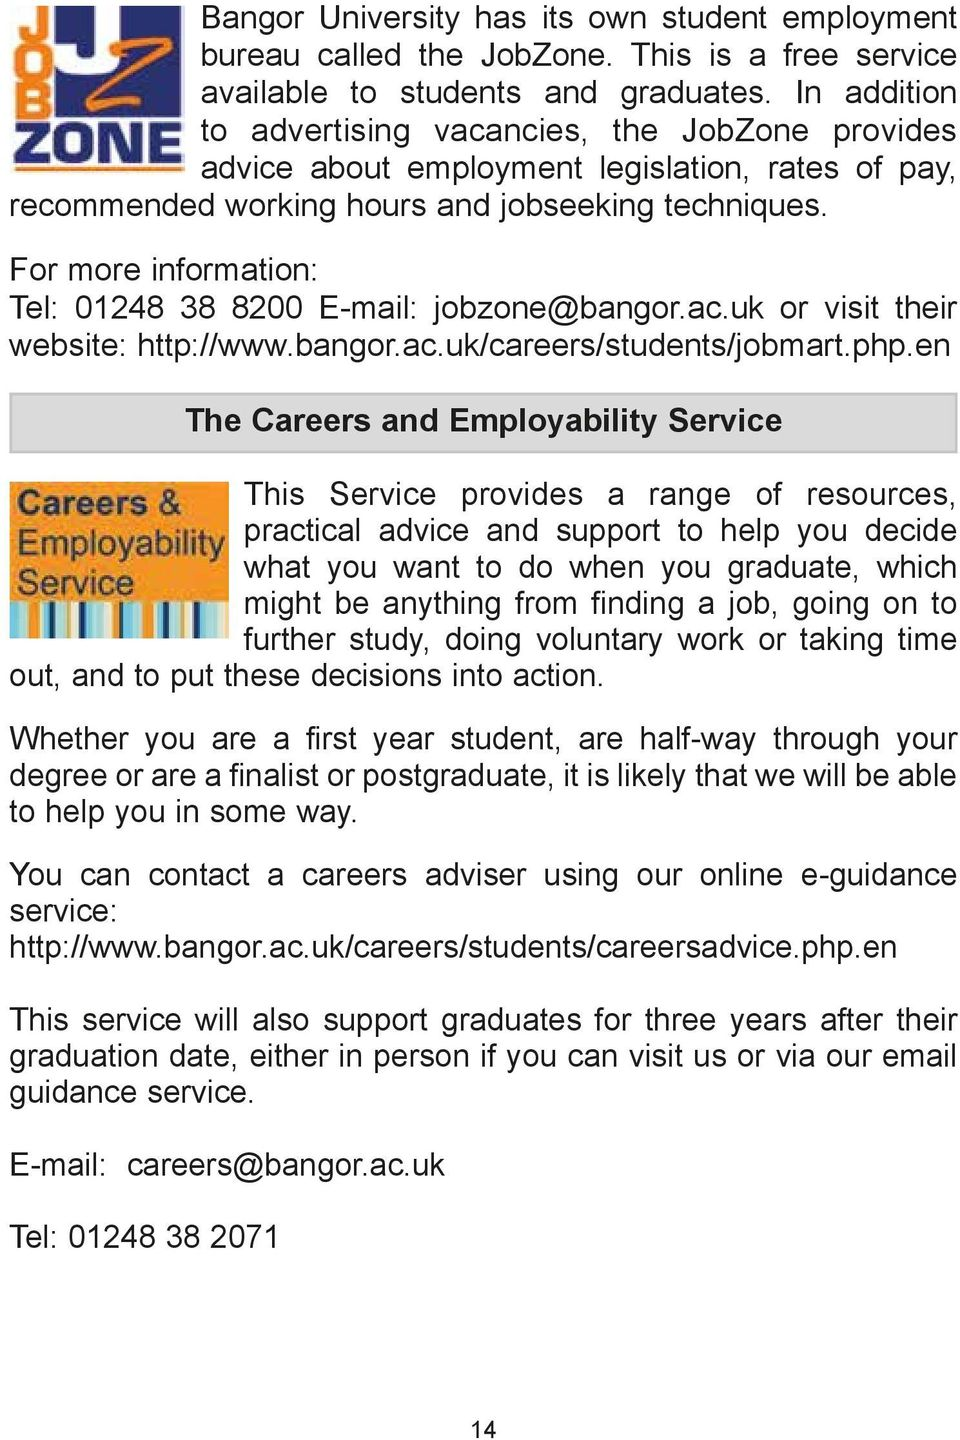 For more information: Tel: 01248 38 8200 E-mail: jobzone@bangor.ac.uk or visit their website: http://www.bangor.ac.uk/careers/students/jobmart.php.